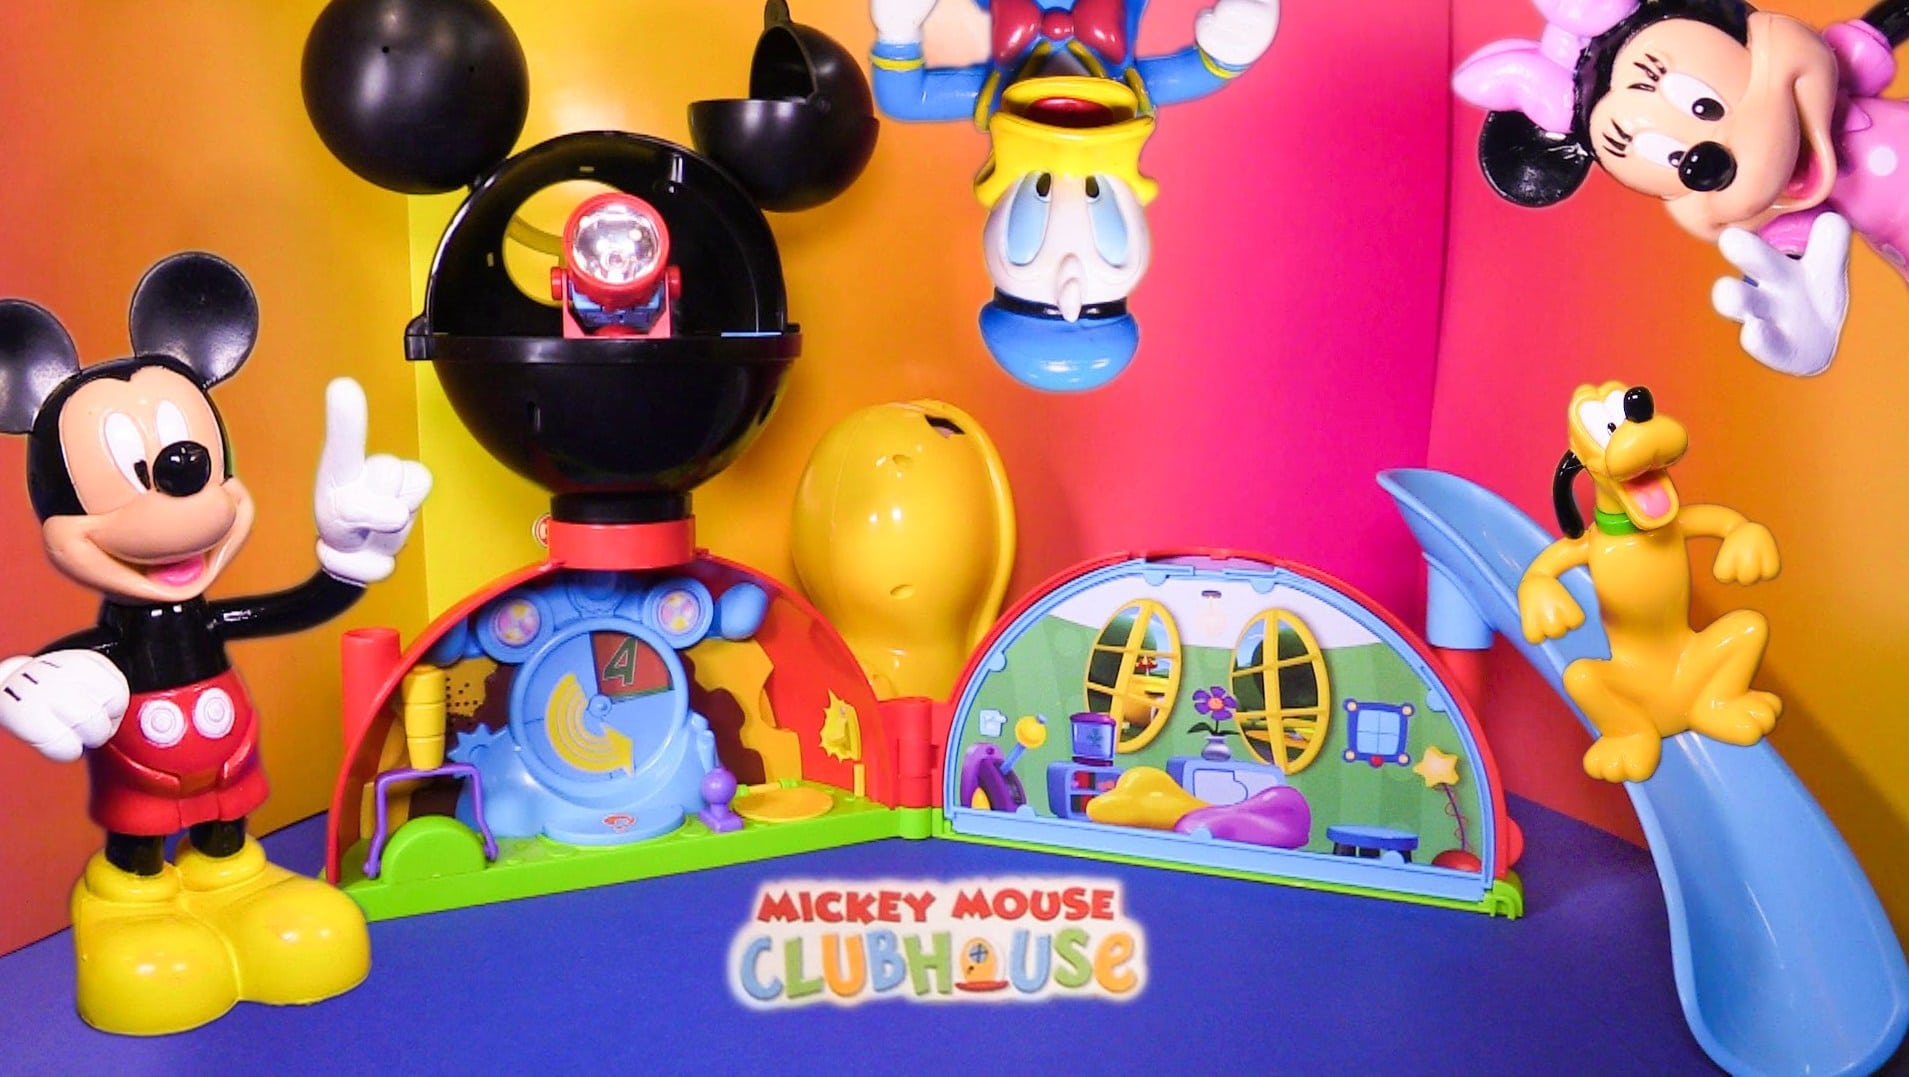 Latest Mickey Mouse Clubhouse Toy Image